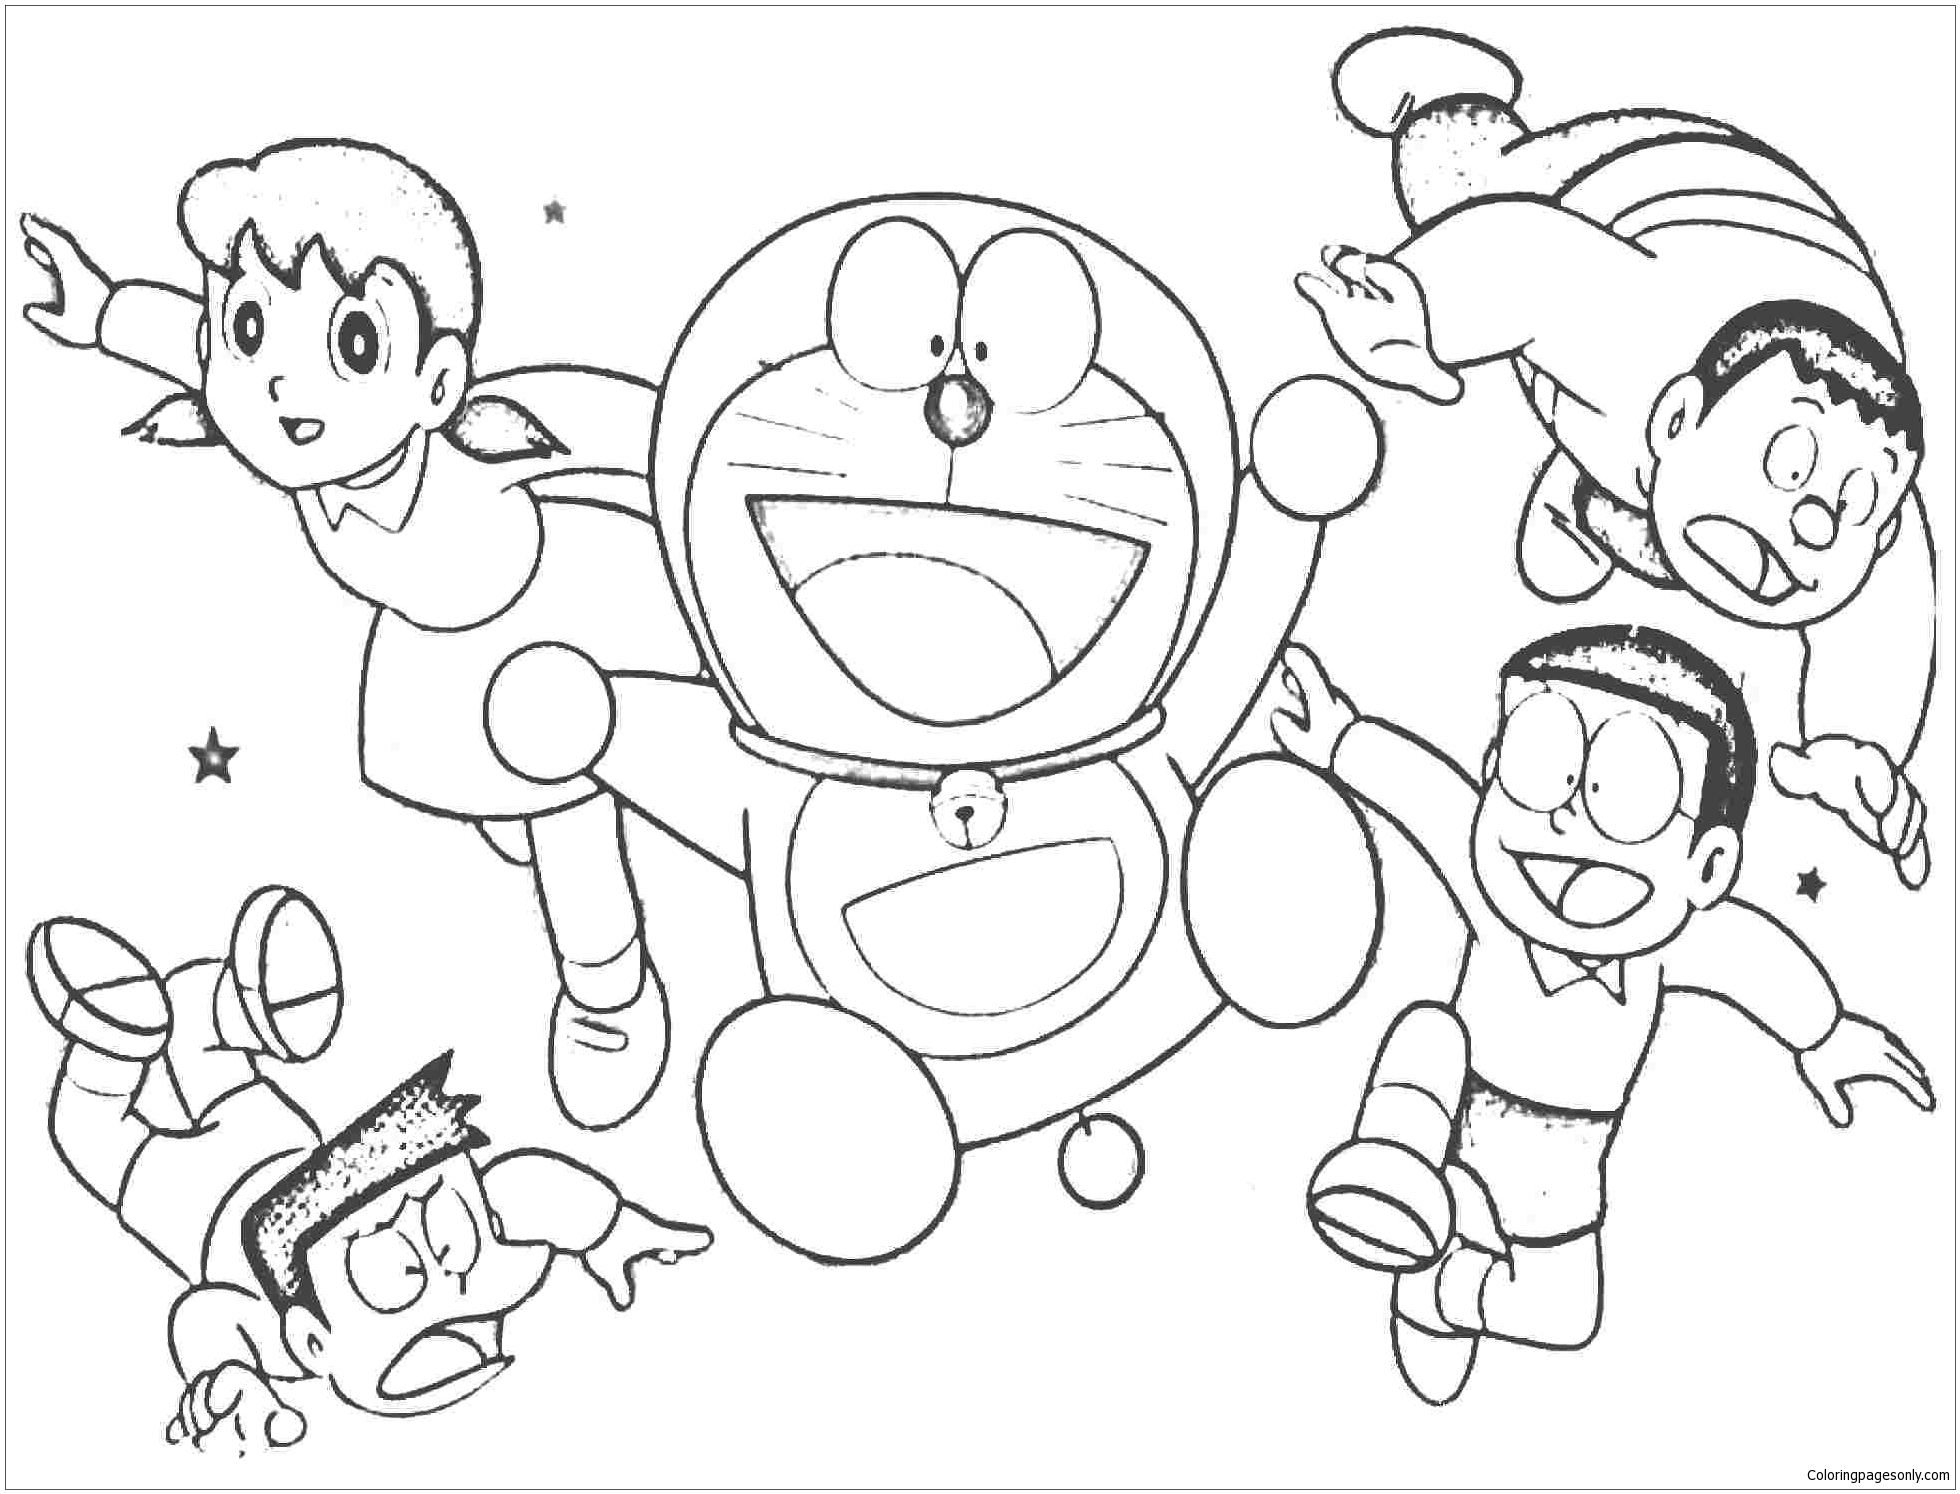 Doraemon Drawing At GetDrawings